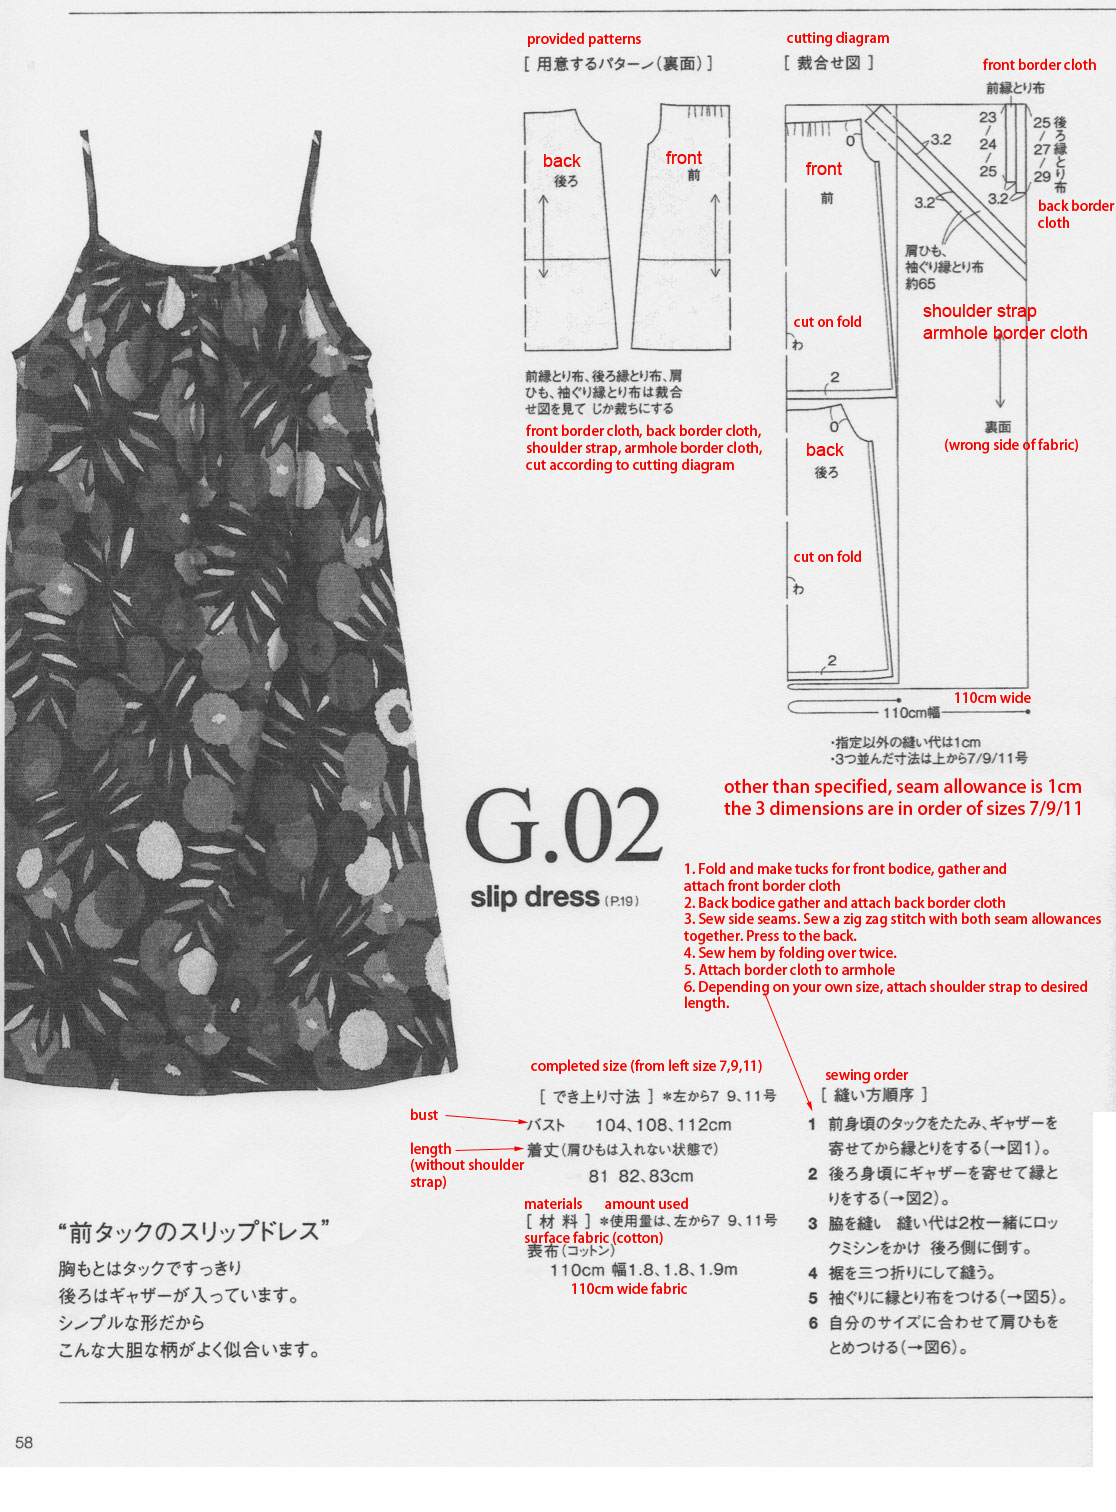 translating japanese sewing pattern | Japanese Sewing, Pattern ...